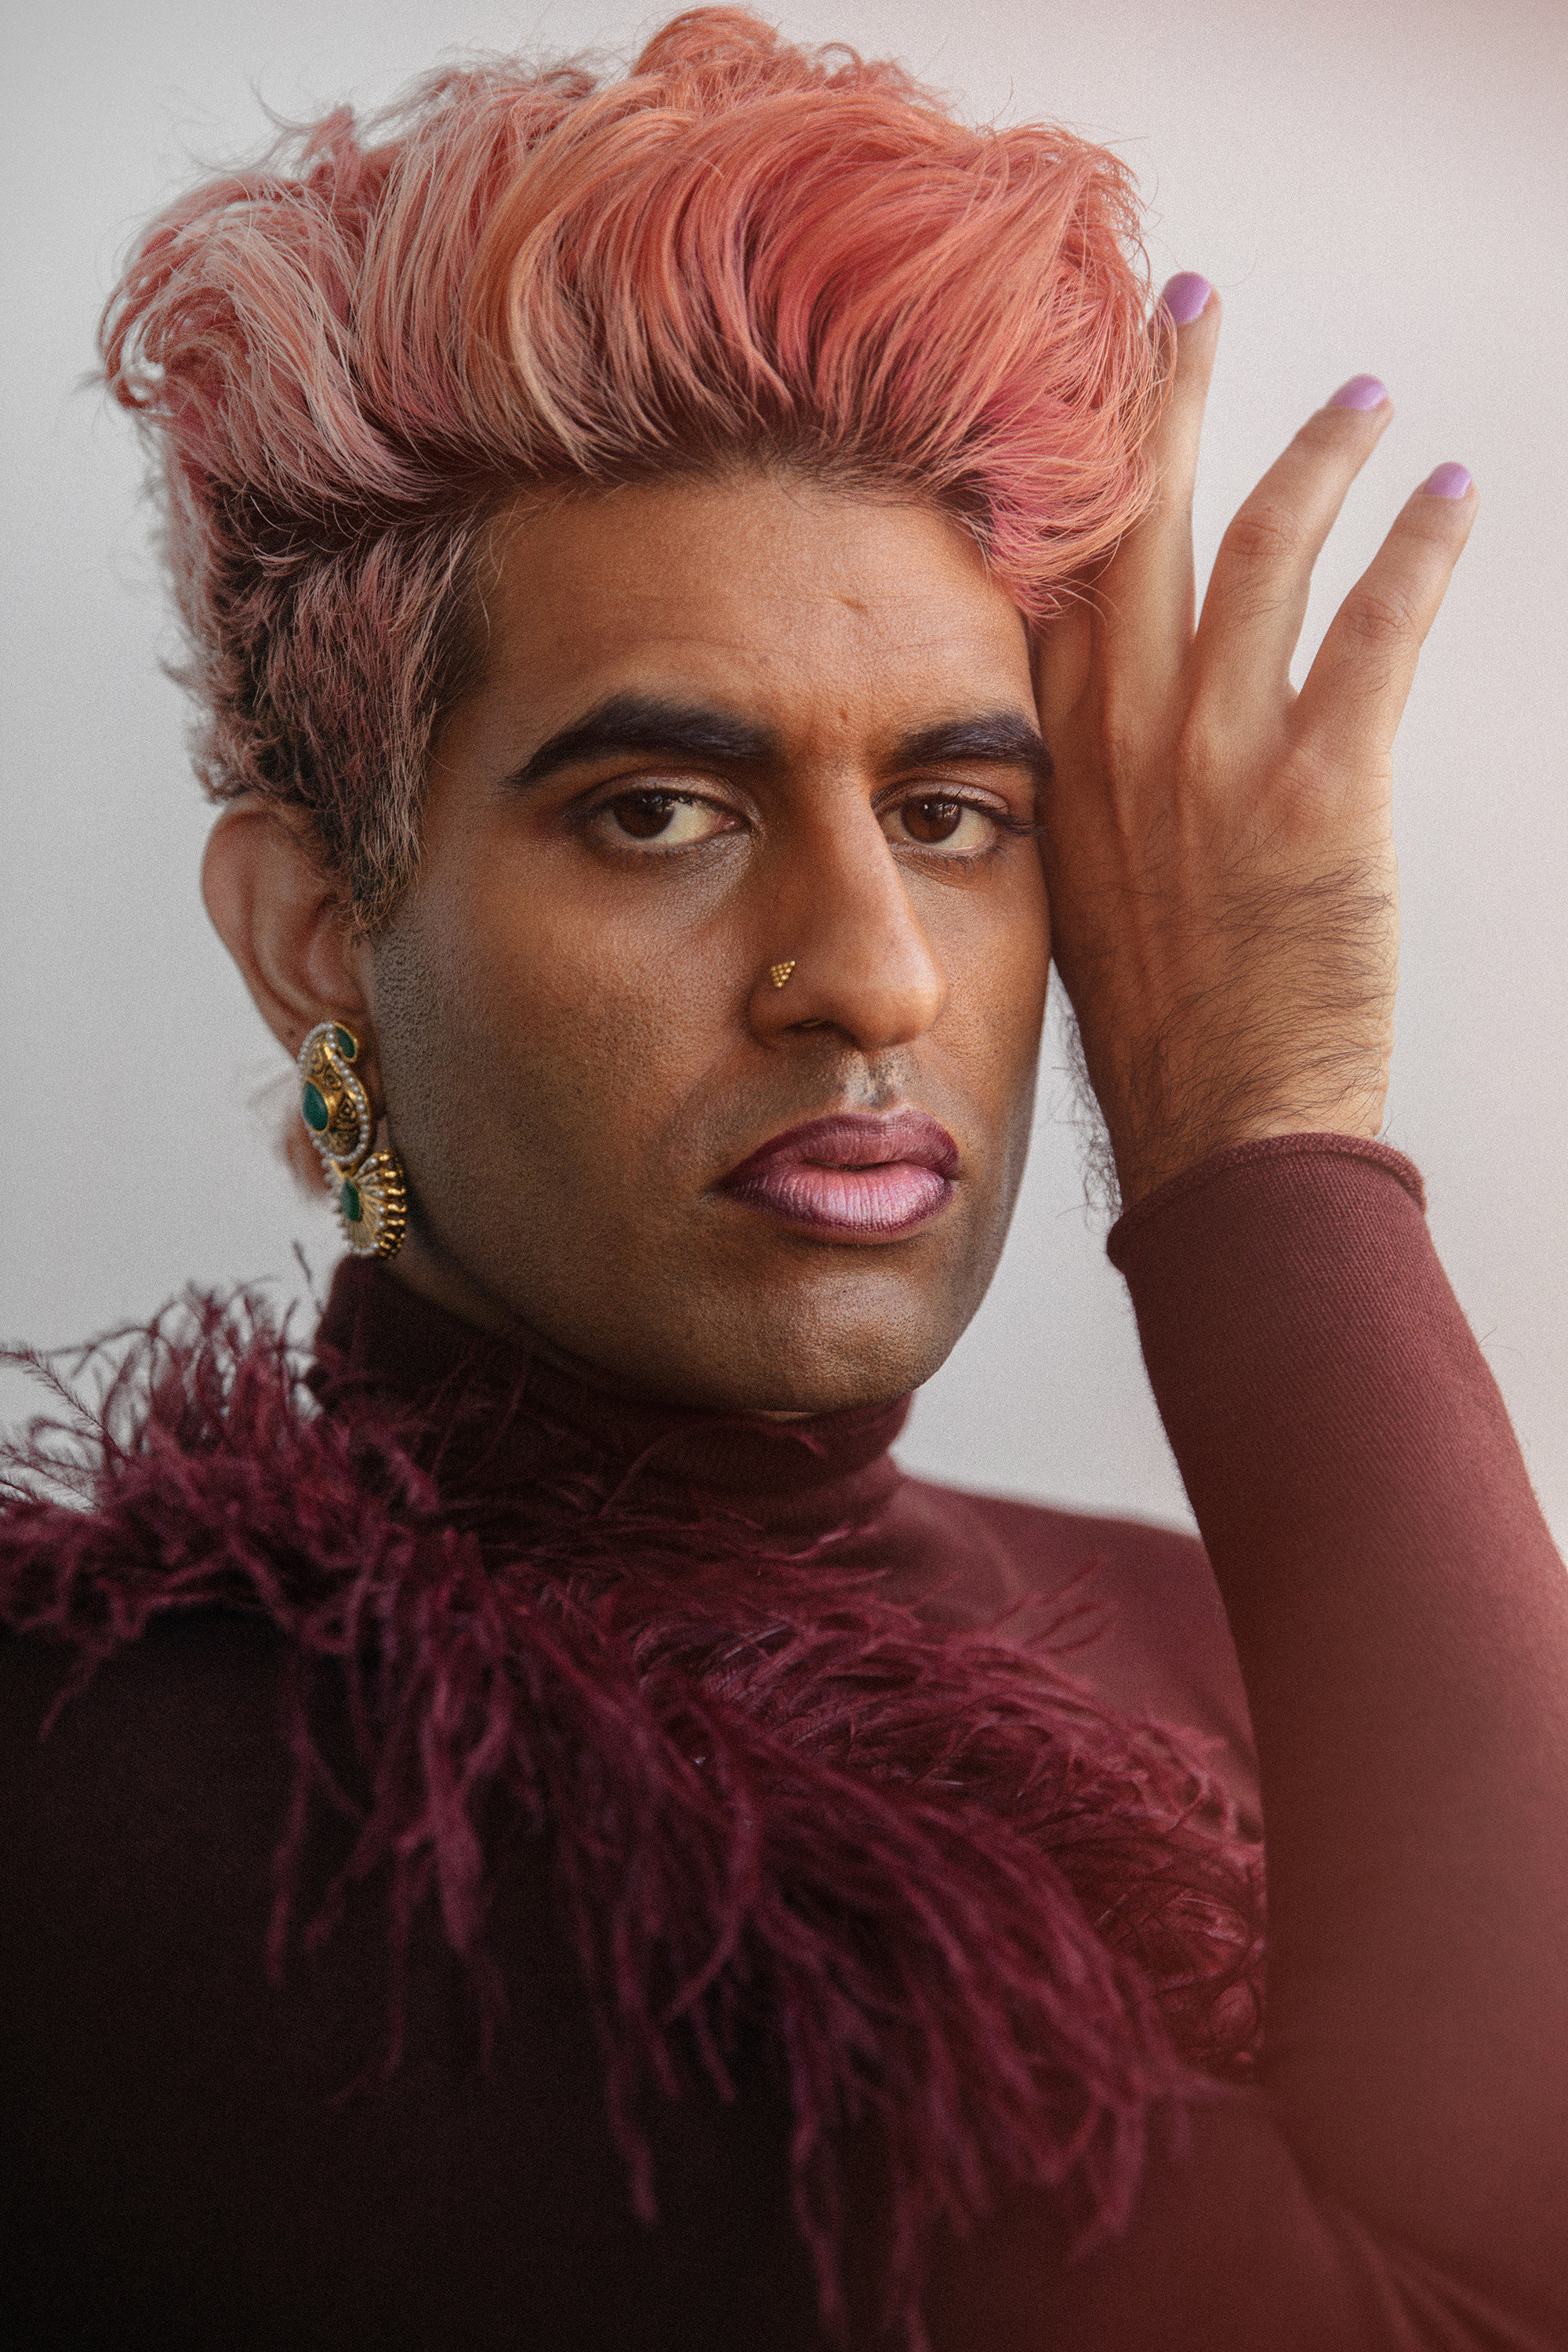 A closeup of a man with pink hair wearing a feather boa